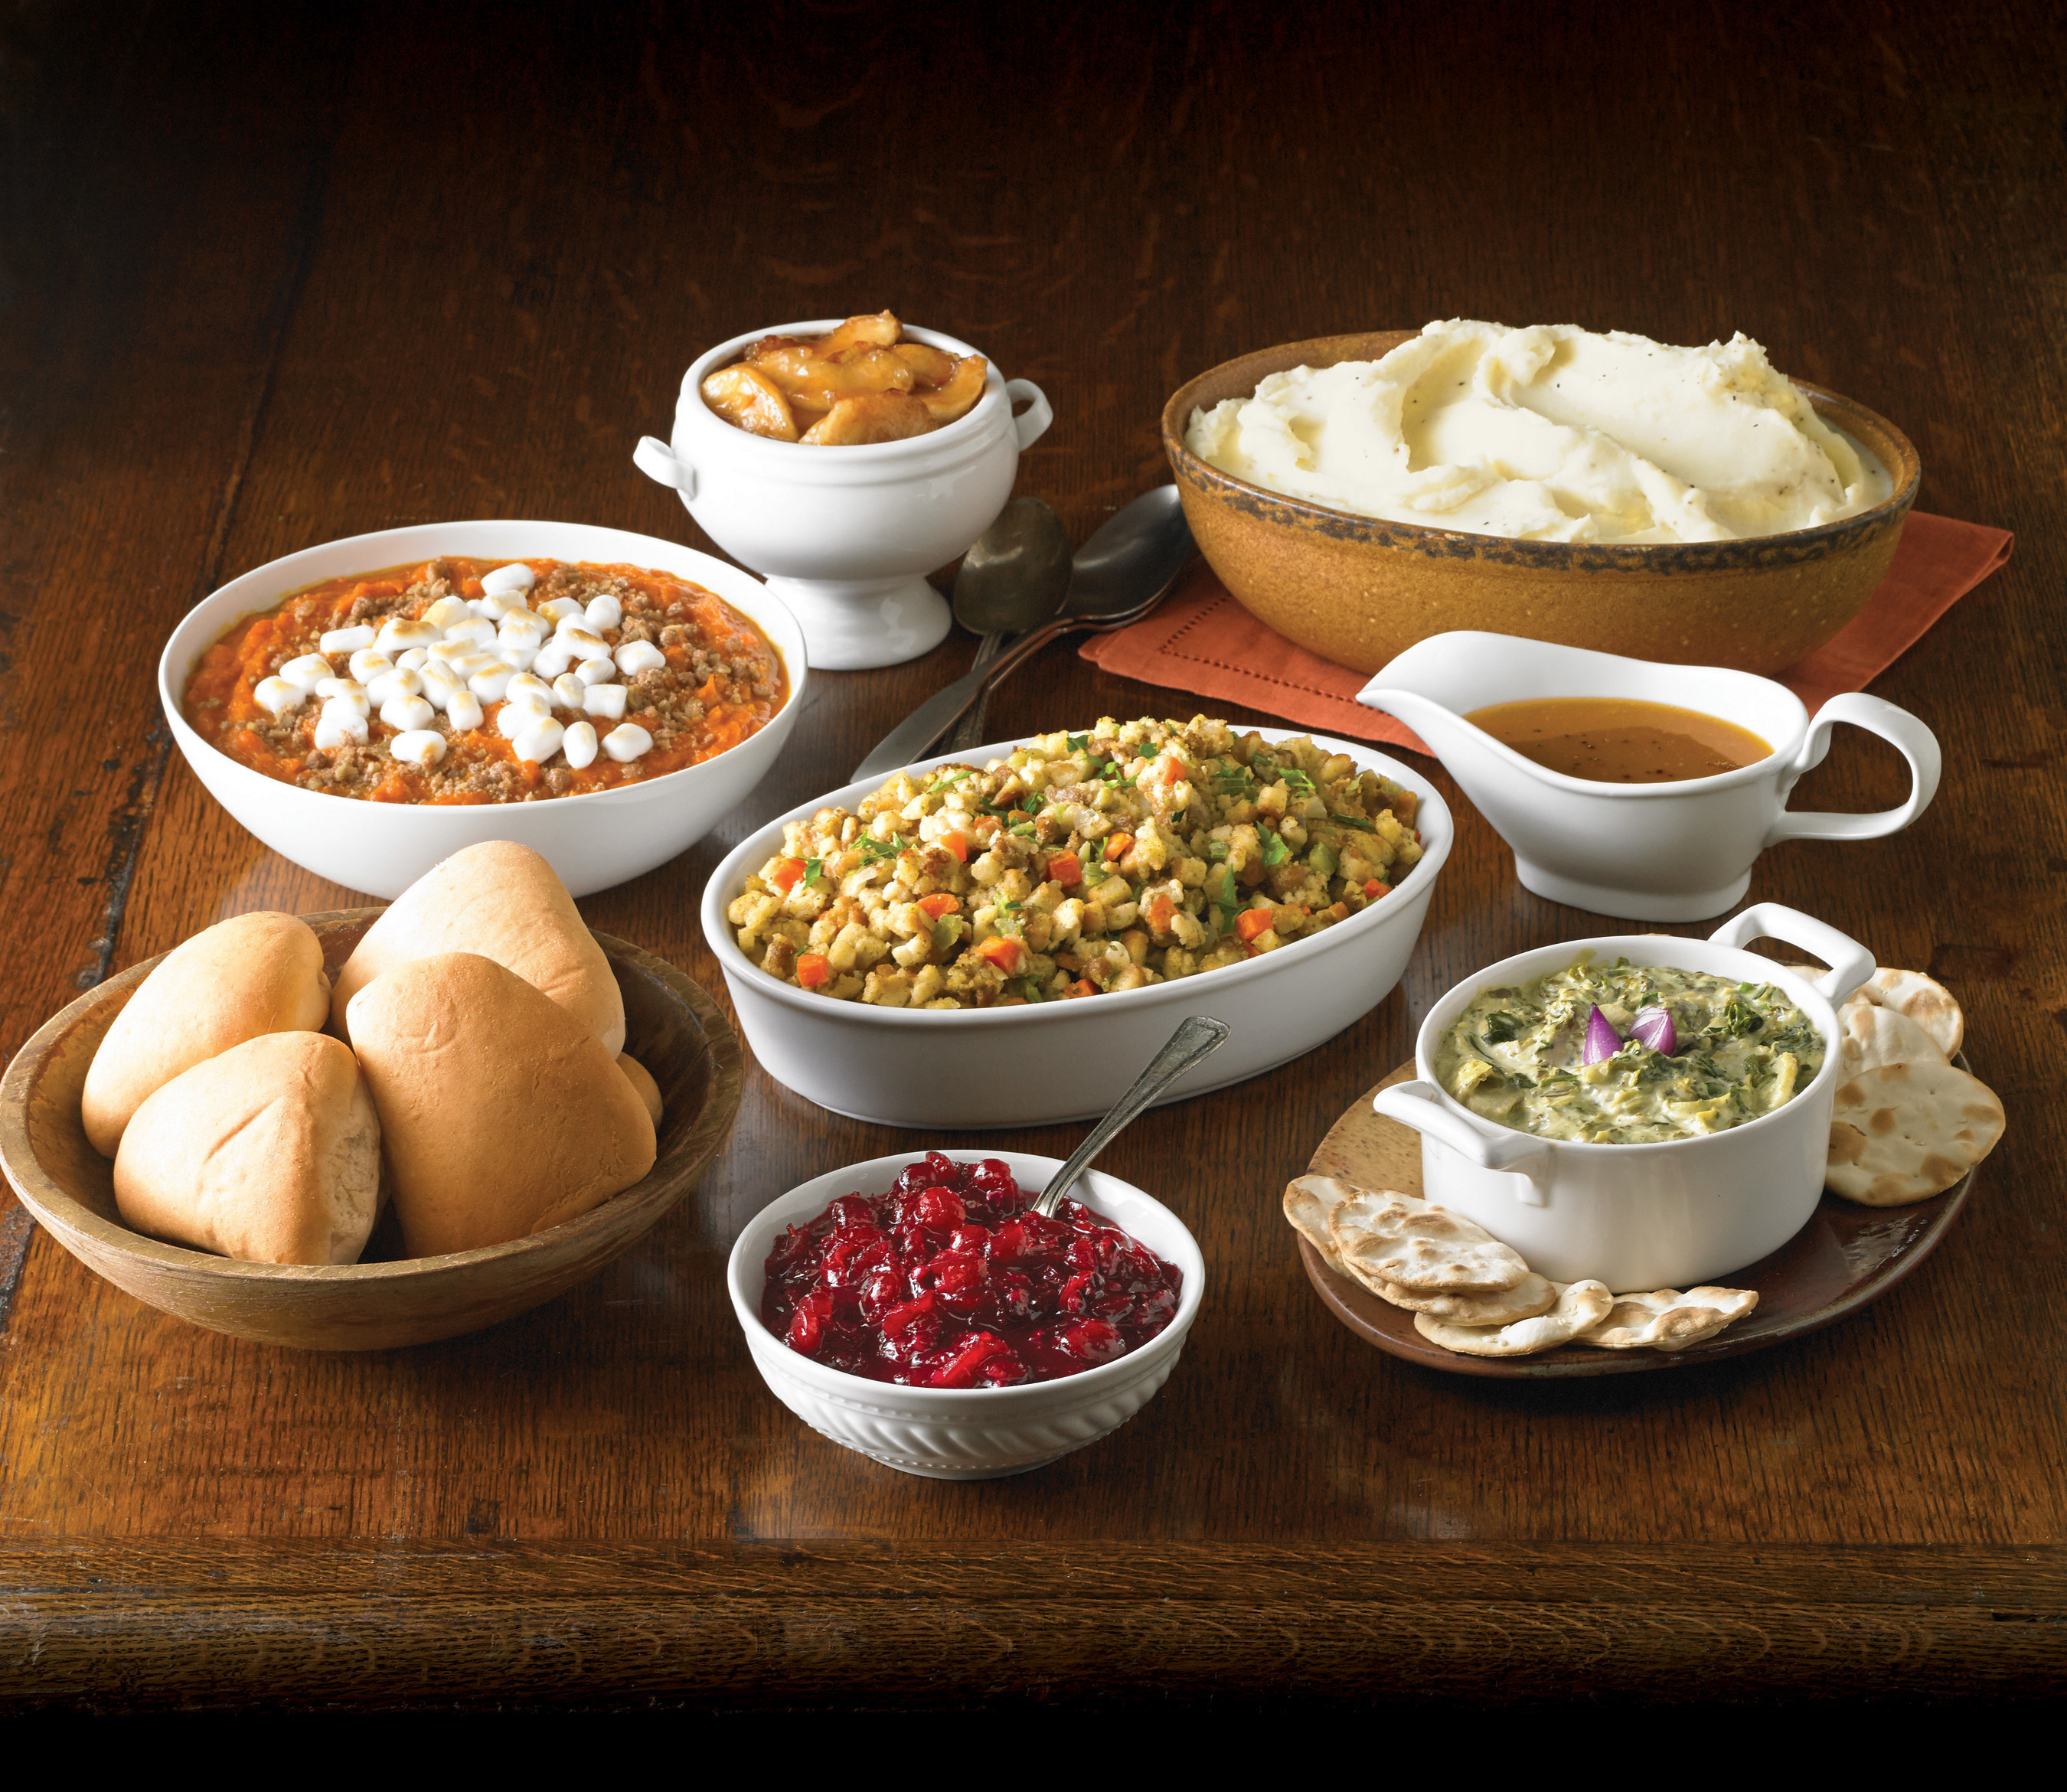 Boston Market has an array of individual sides, entrees, appetizers and desserts available for holiday.